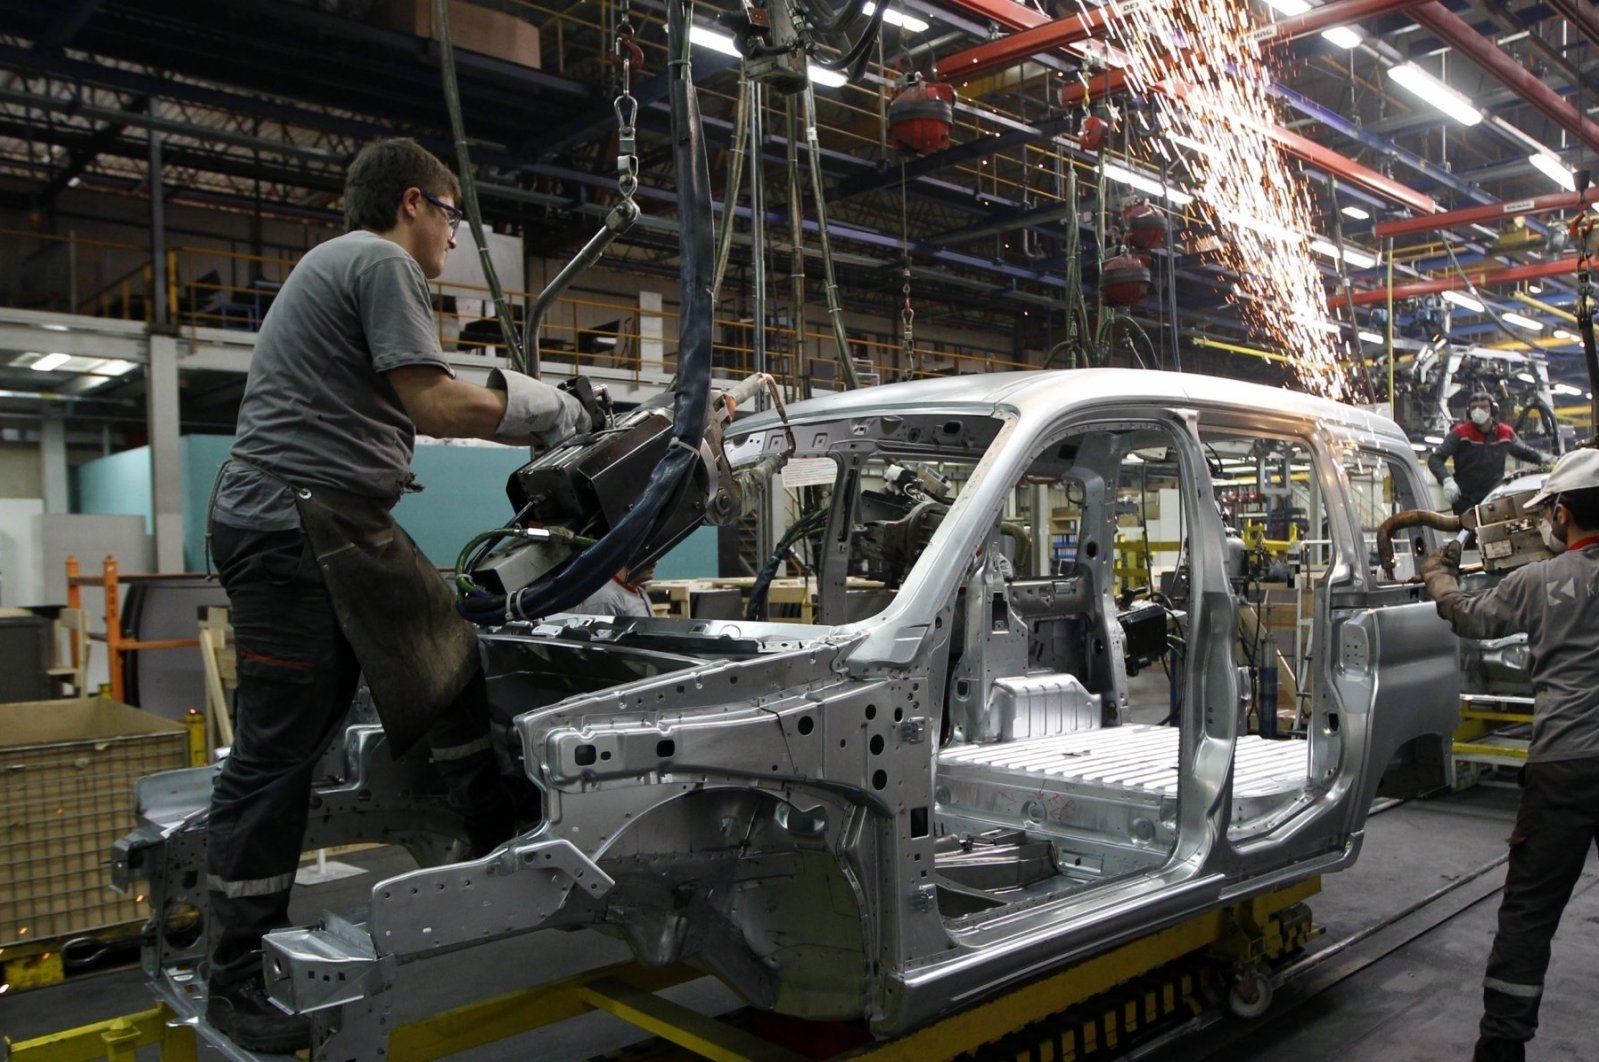 Employees work on the assembly line of the Karsan automotive factory in Bursa, Turkey, Feb. 17, 2011. (Reuters Photo)